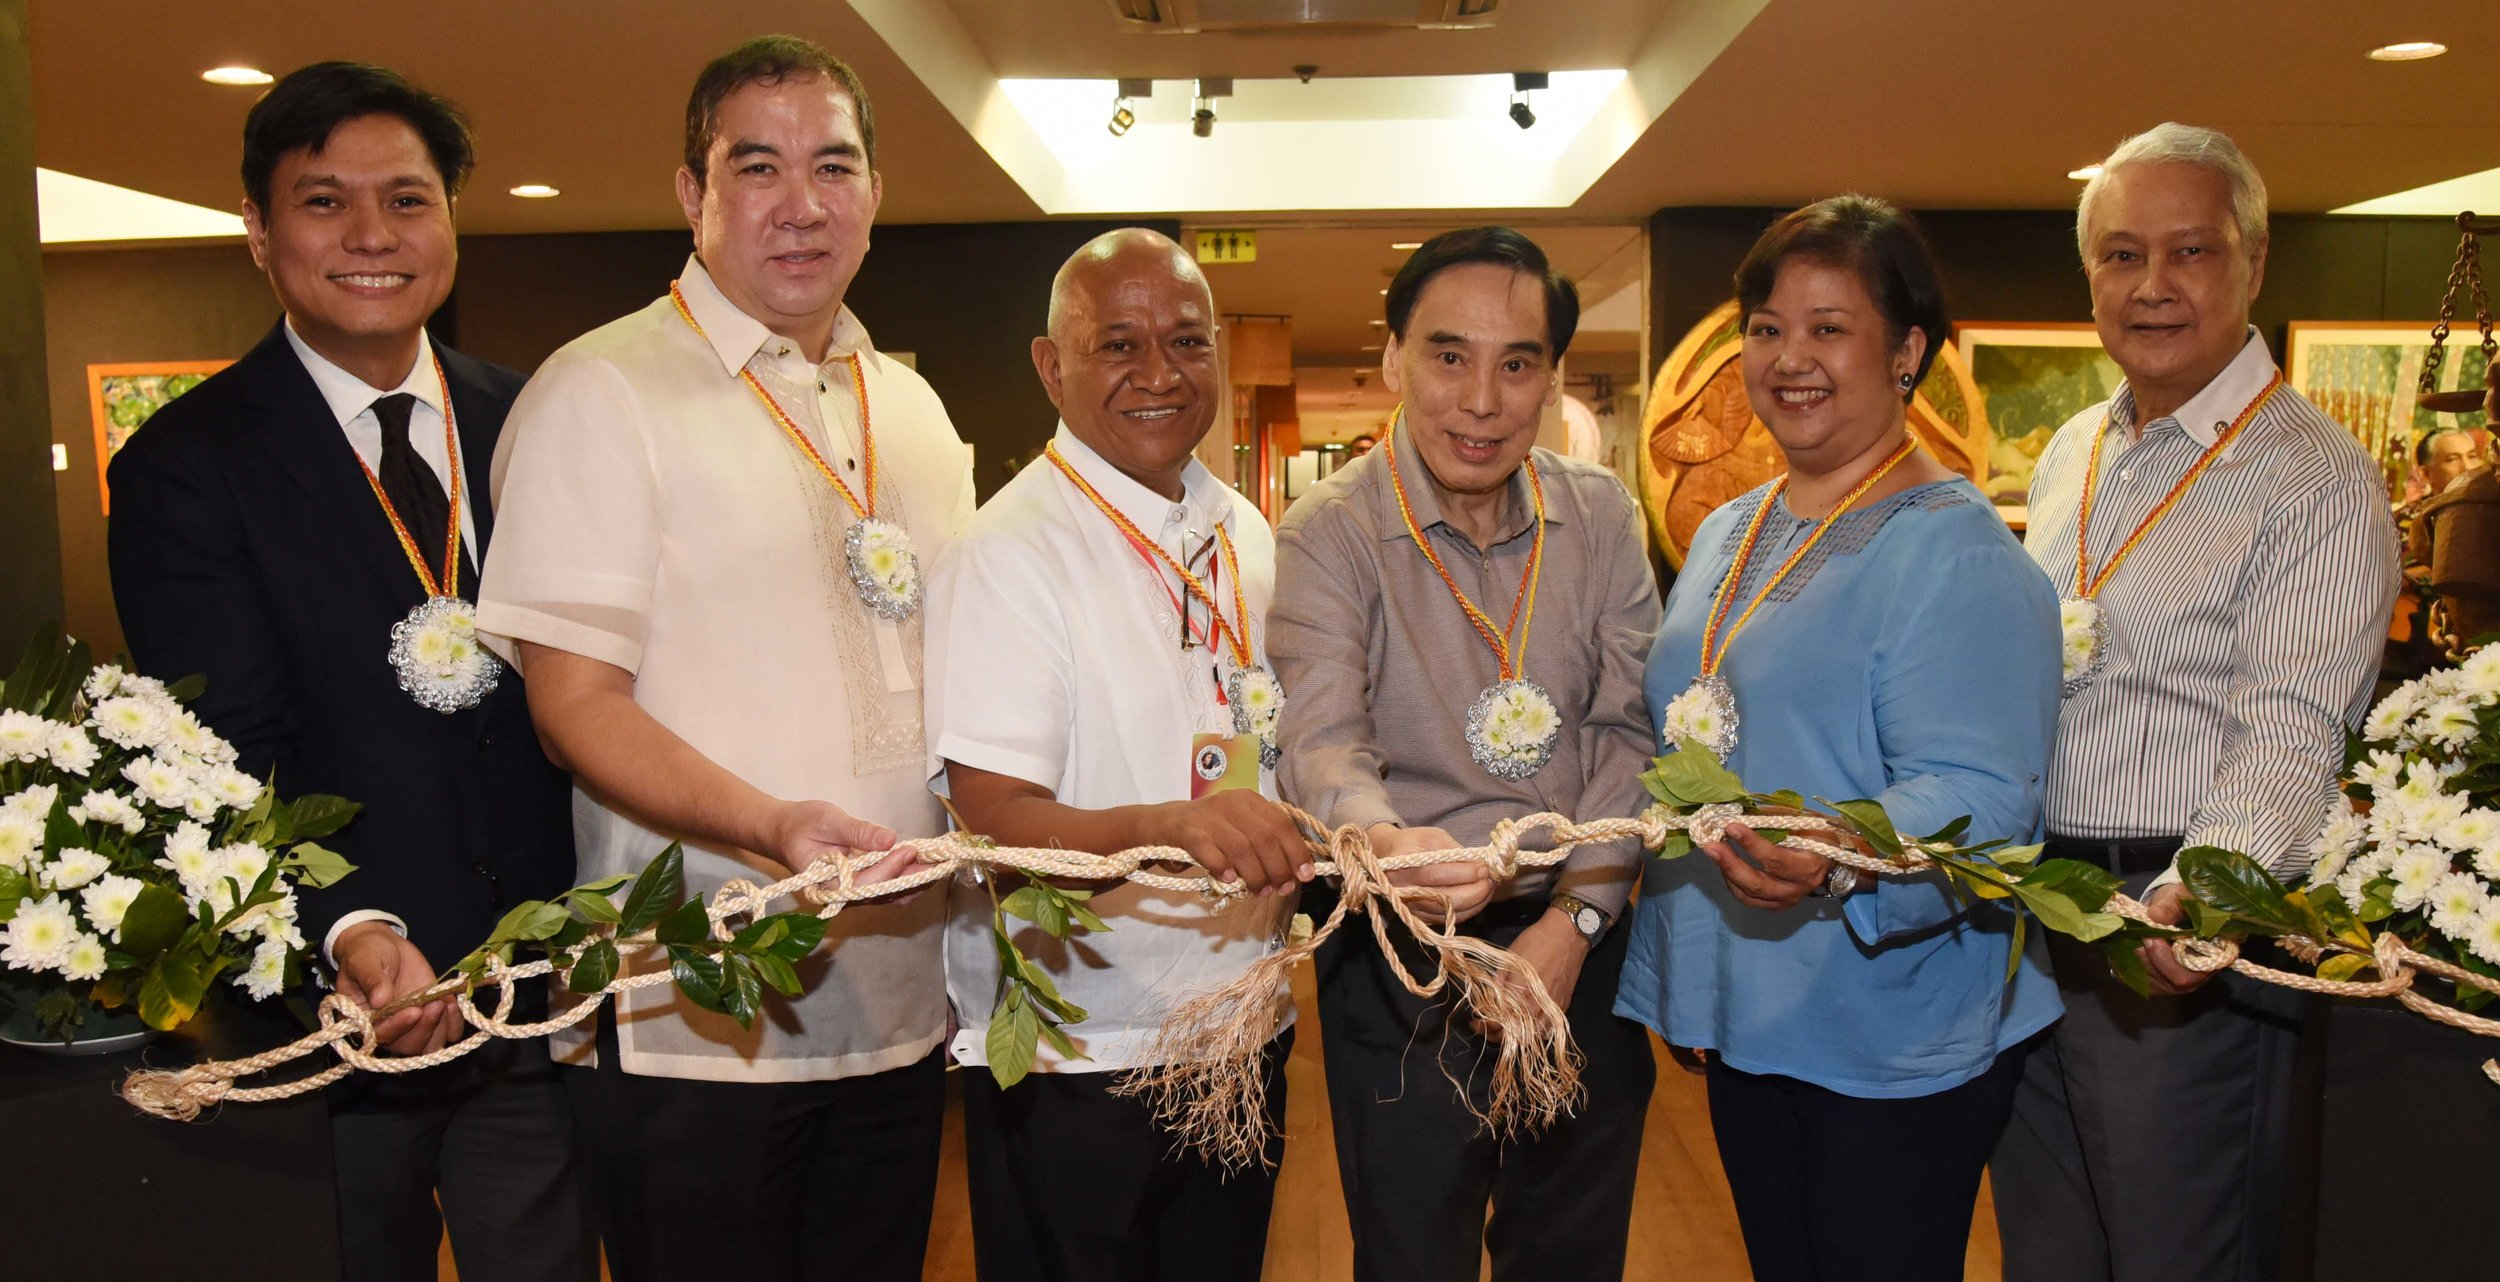 At the ribbon cutting of KKK are, from left Dr.  Malen Gellido  (from Pakil, Laguna) of St. Frances Cabrini Medical Center, Inc., Dr.  Florentino T. Afable  of St. Frances Cabrini Medical Center, Inc., Dr. Nilo Marquez Valdecantos, Mr.  Toni Lo,  president of LRI Design Plaza, Dr.  Rosalinda Pullido , oncologist of St. Frances Cabrini, MD of St. Frances Cabrini Medical Center, Inc., and J ohnny Hubilla .